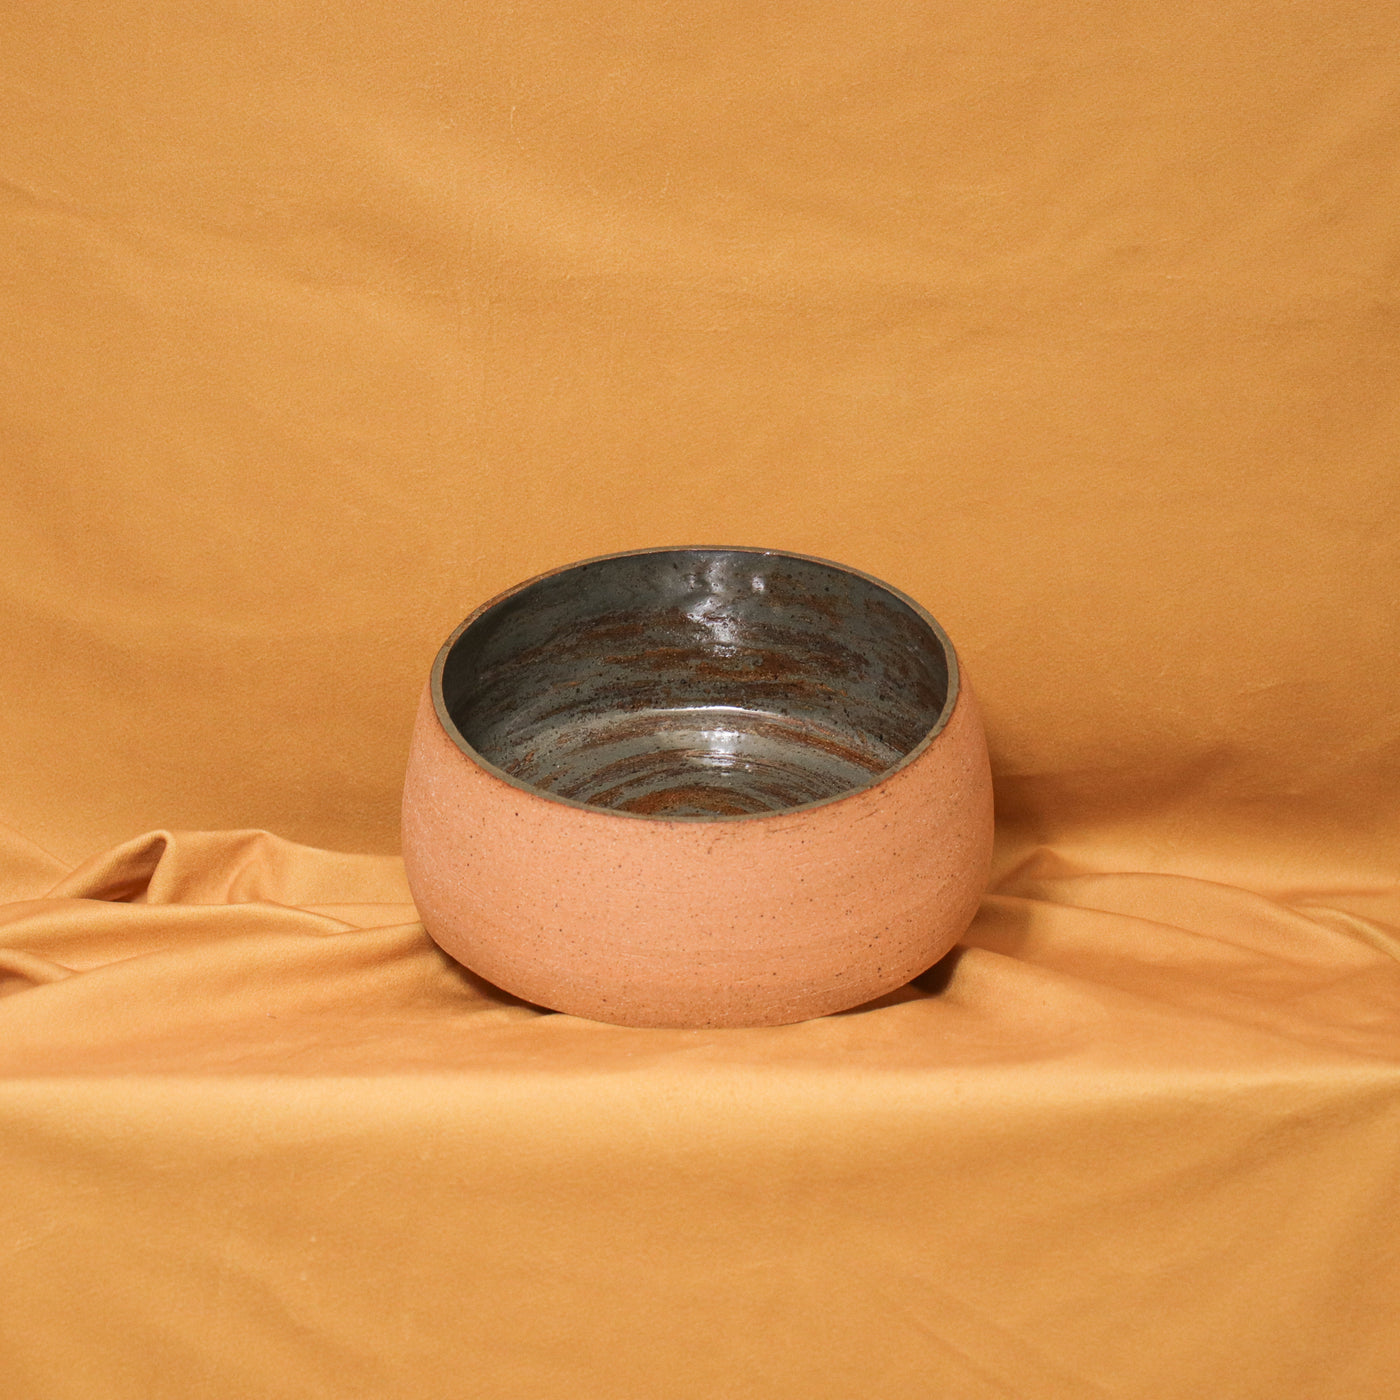 Vicky Makes Things Desert Bowl Rose City Goods Food Safe Glaze Bisqueware Exterior Handmade in Toronto Ontario Women-Led Business